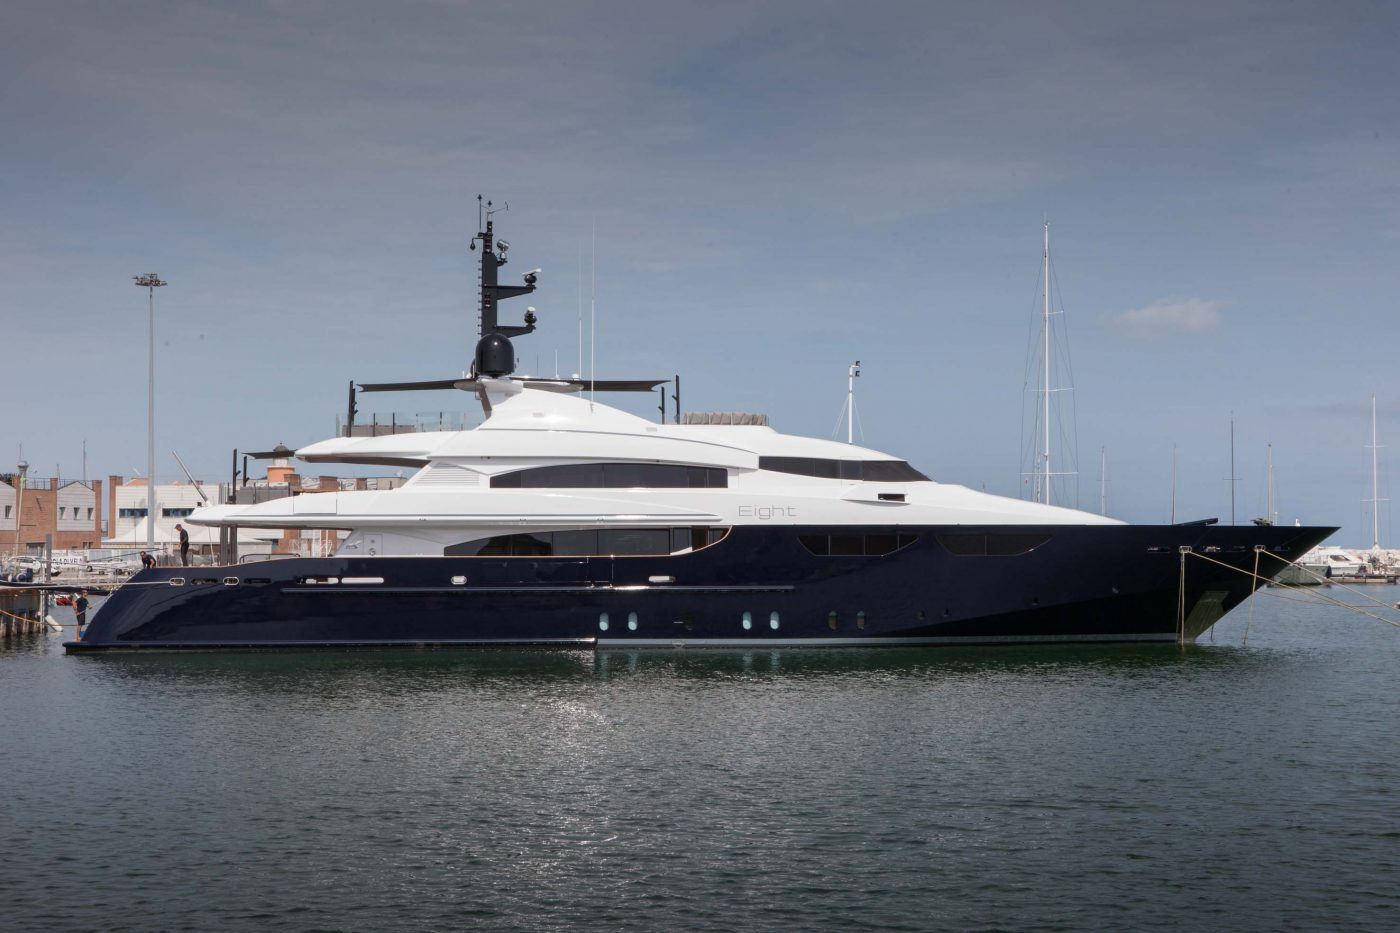 Yachts middle east - CRN - EIGHT 46M